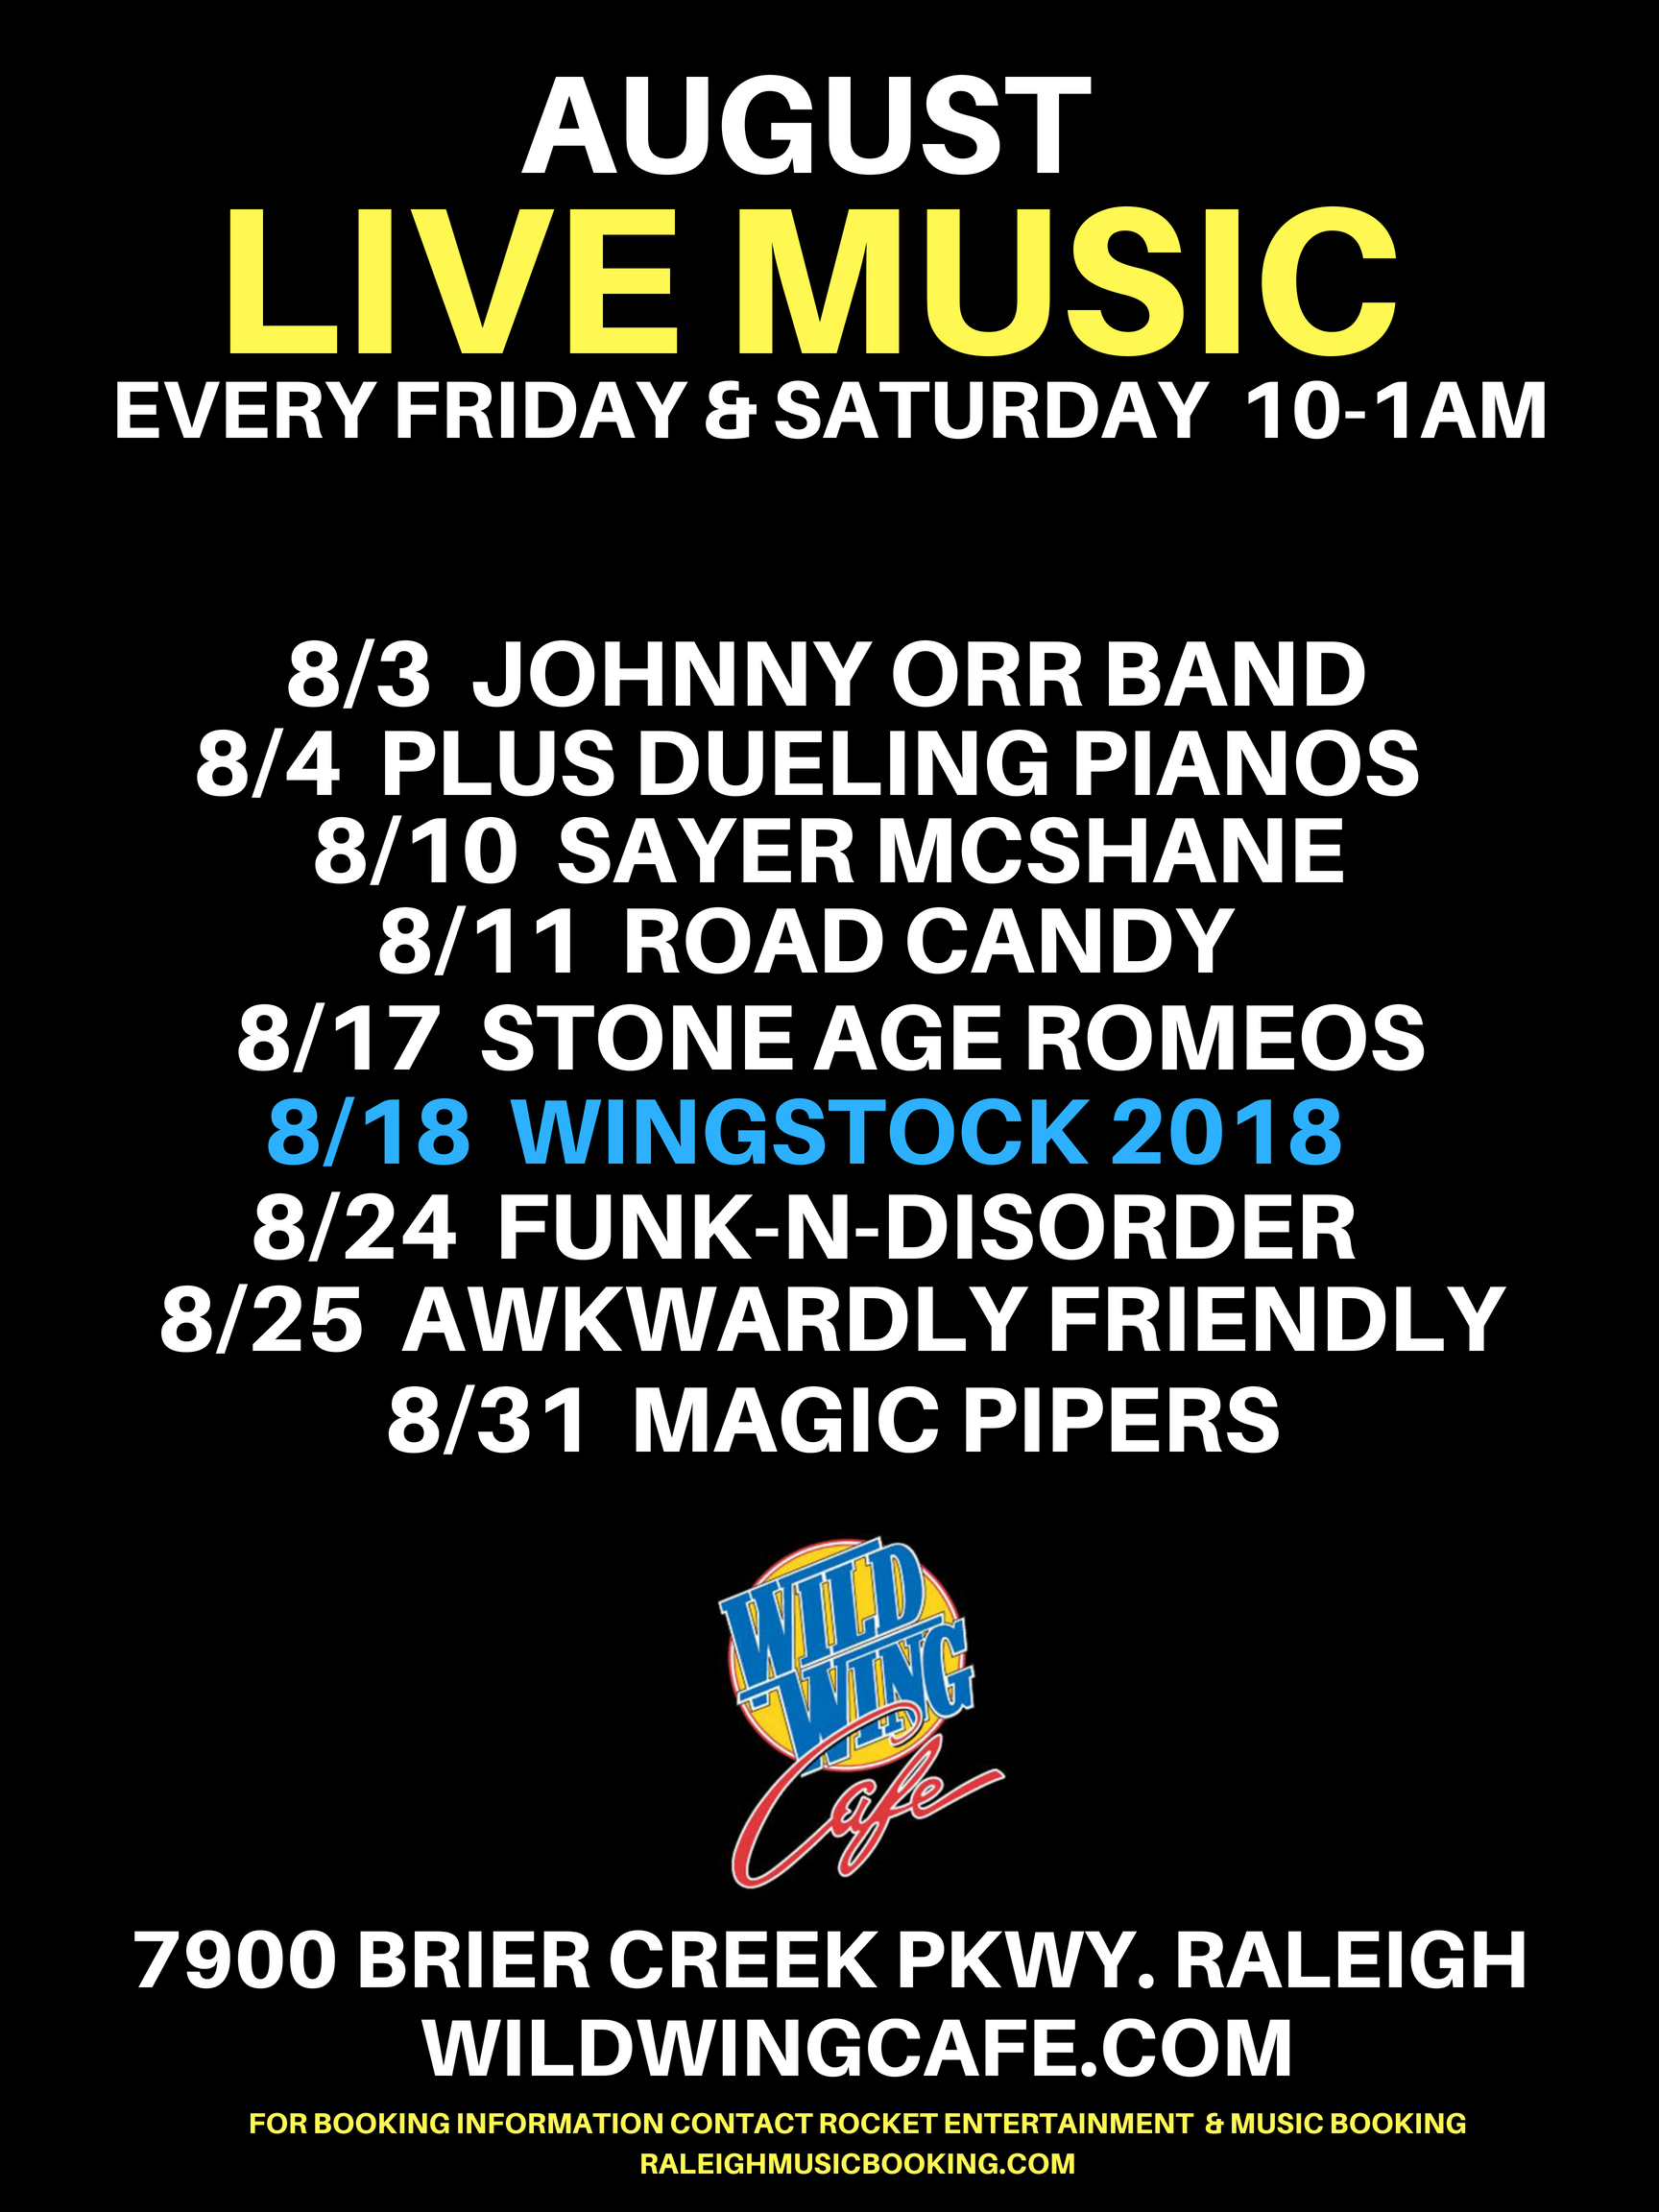 WILD WING CAFE AUGUST